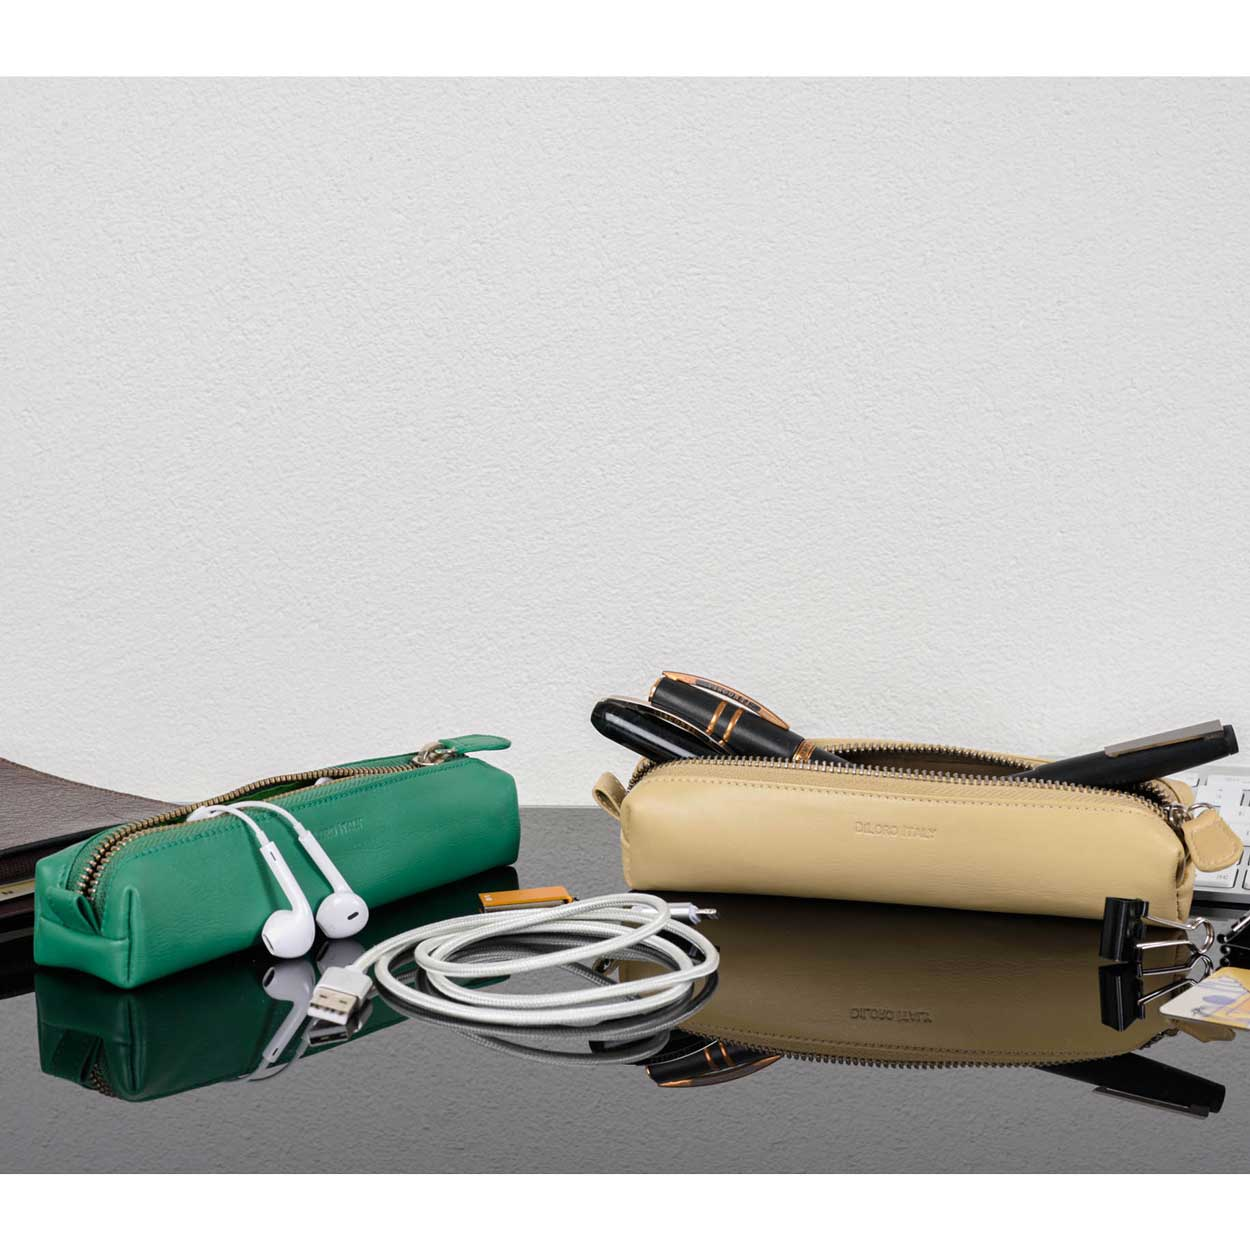 DiLoro Pen & Pencil Case: Color Light Green and Beige with YKK zippered pencil, pen case made from top quality, full grain nappa leather.